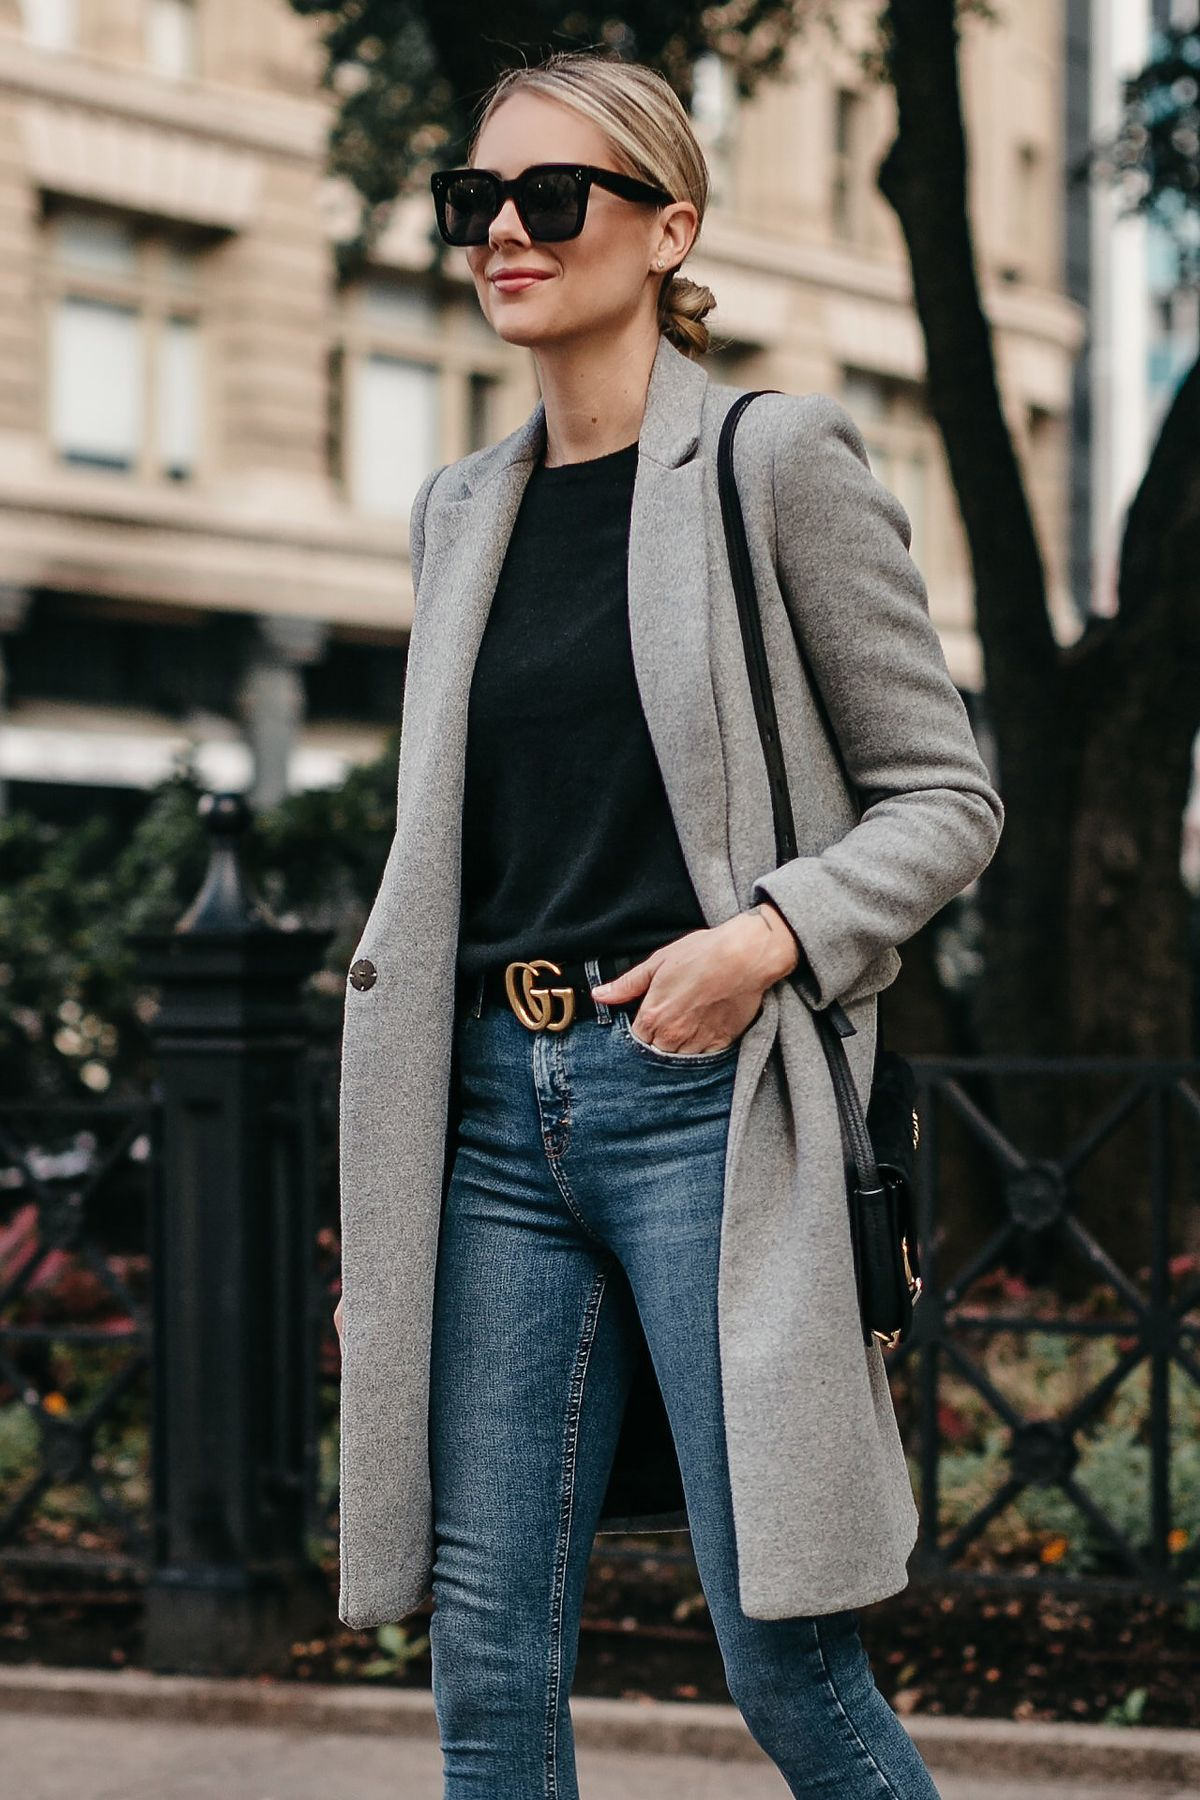 61a442b238 Blonde Woman Wearing Zara Grey Wool Coat Black Sweater Denim Skinny Jeans  Gucci Marmont Belt Fashion Jackson Dallas Blogger Fashion Blogger Street  Style